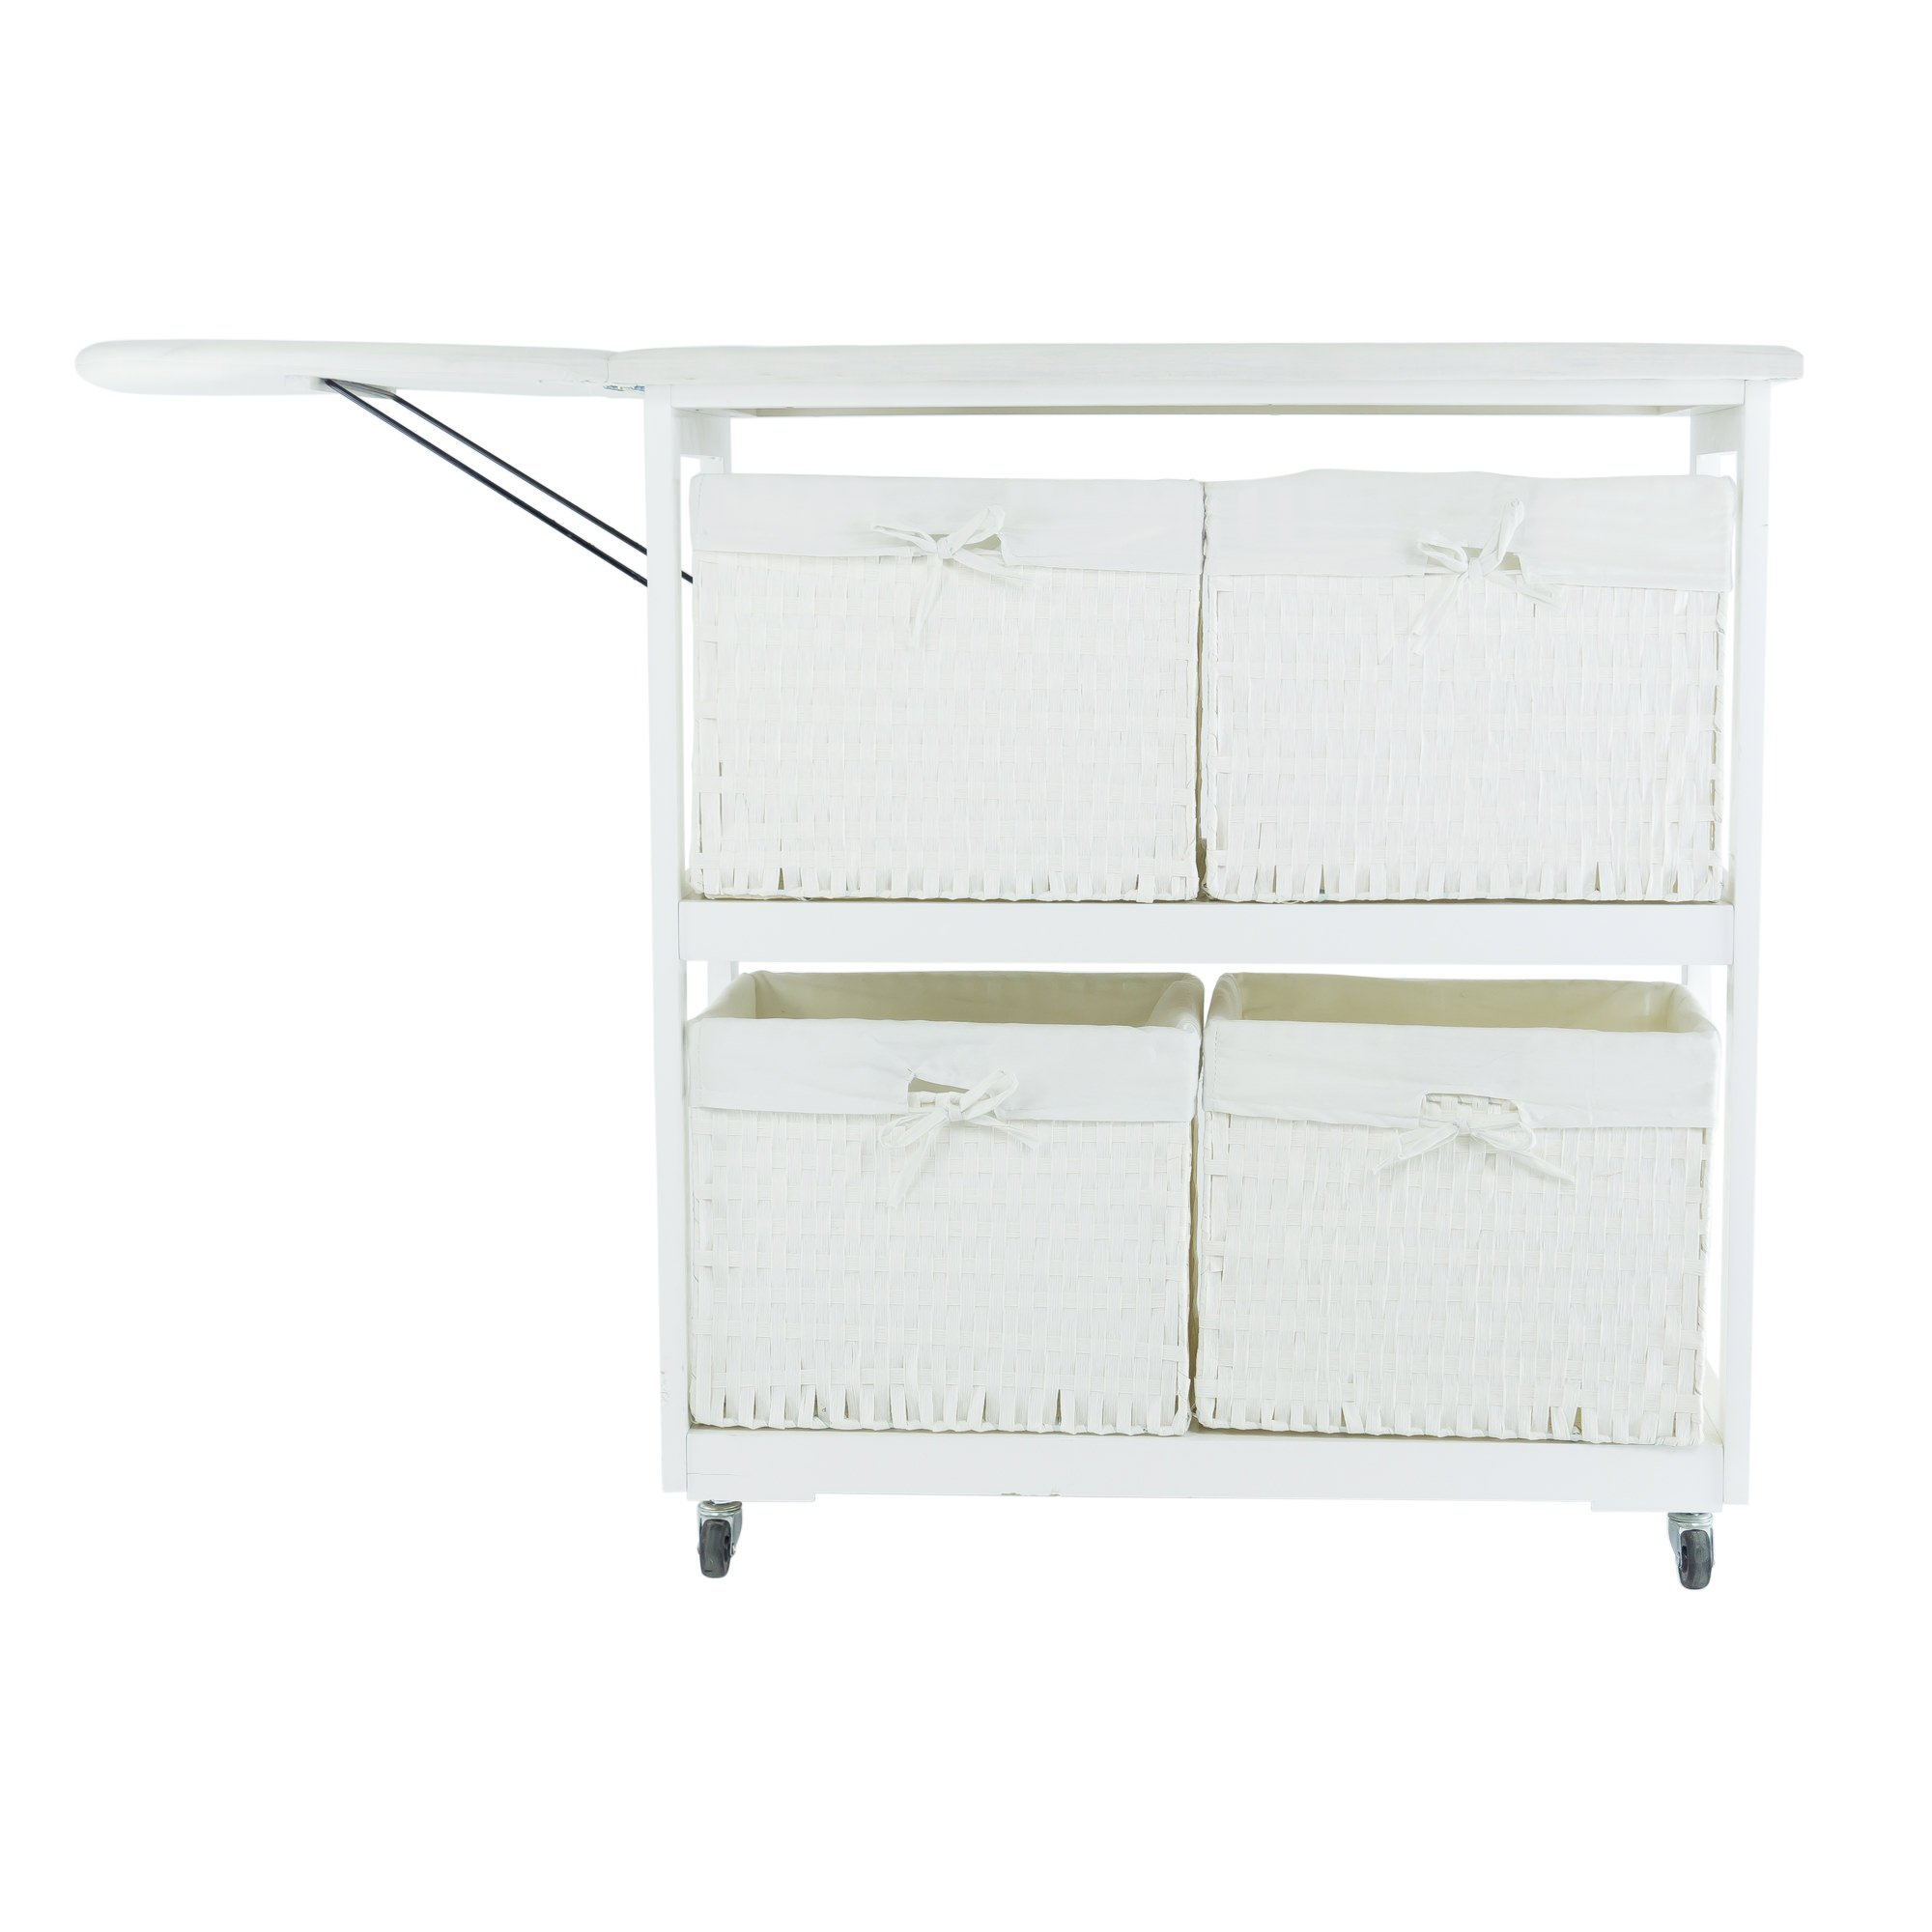 SpaceMaster™ Corner Housewares Oversized Rolling Foldable Ironing Board with Caster Wheels, 4 Woven Baskets, White by SpaceMasterTM (Image #2)